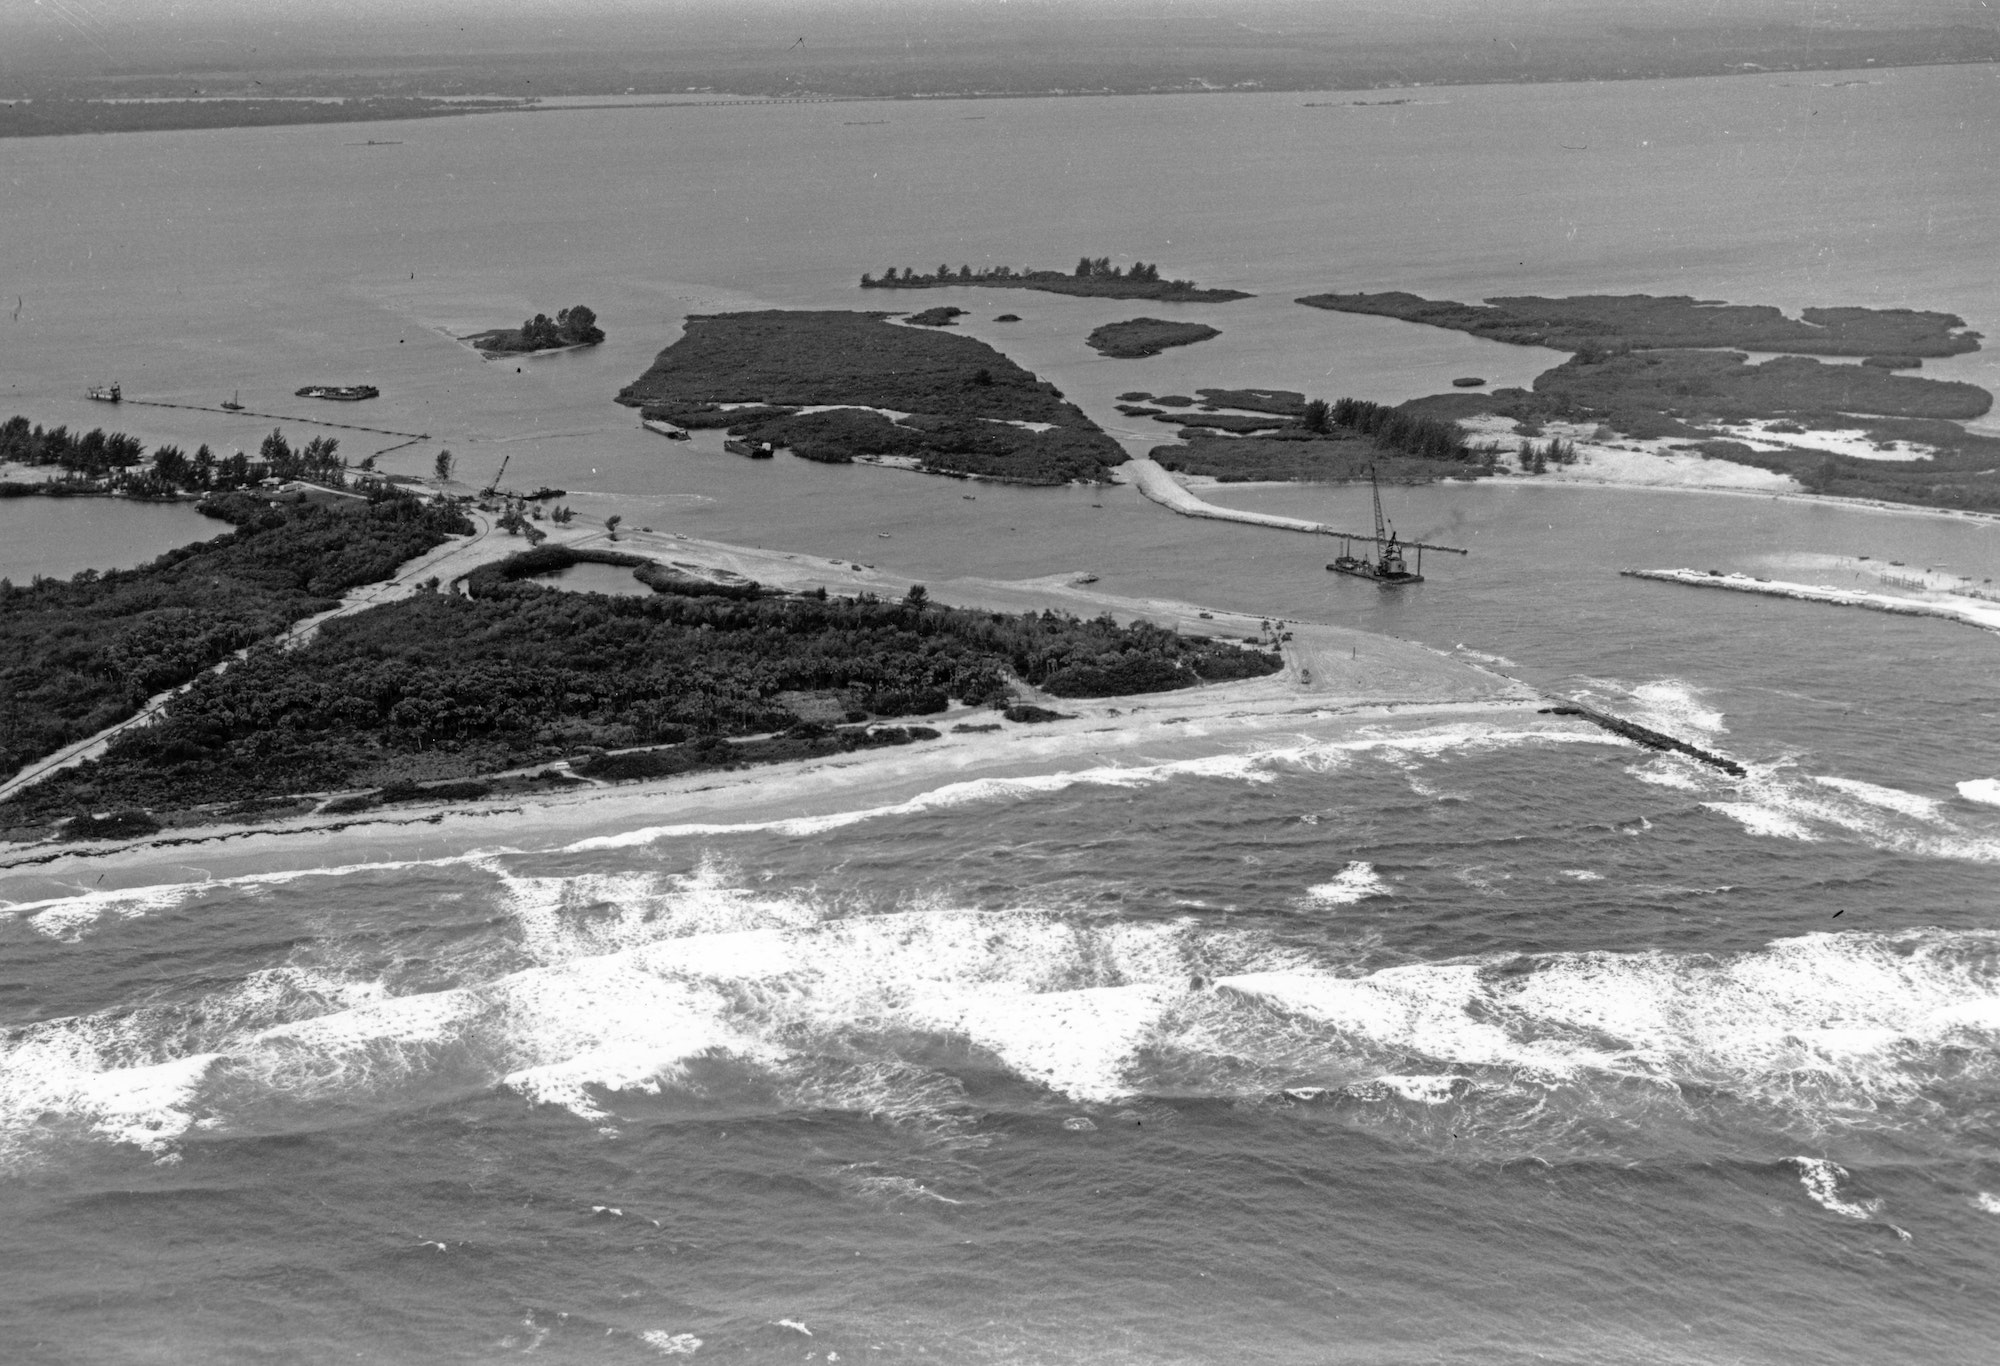 aerial view of the inlet in 1962 looking Northwest showing the south side of the inlet with dredge boats and equipment removing sand in the inlet channel